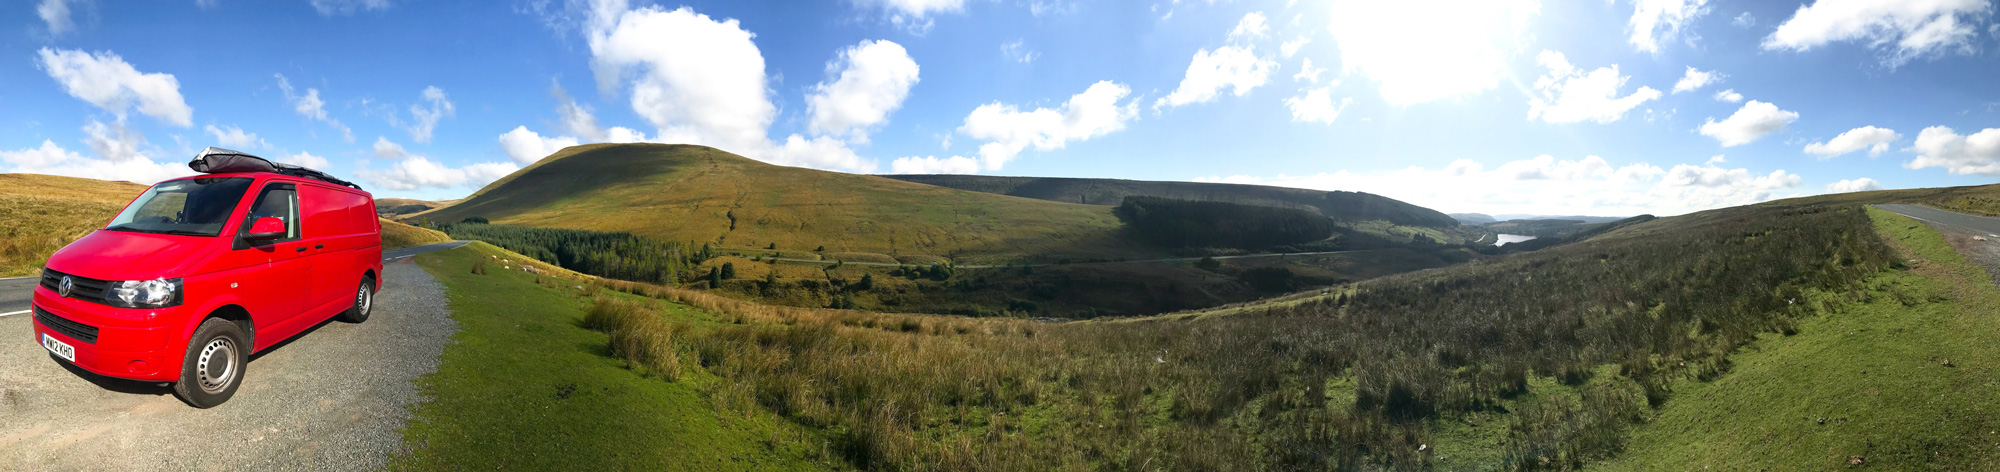 panorama of campervan in the hills